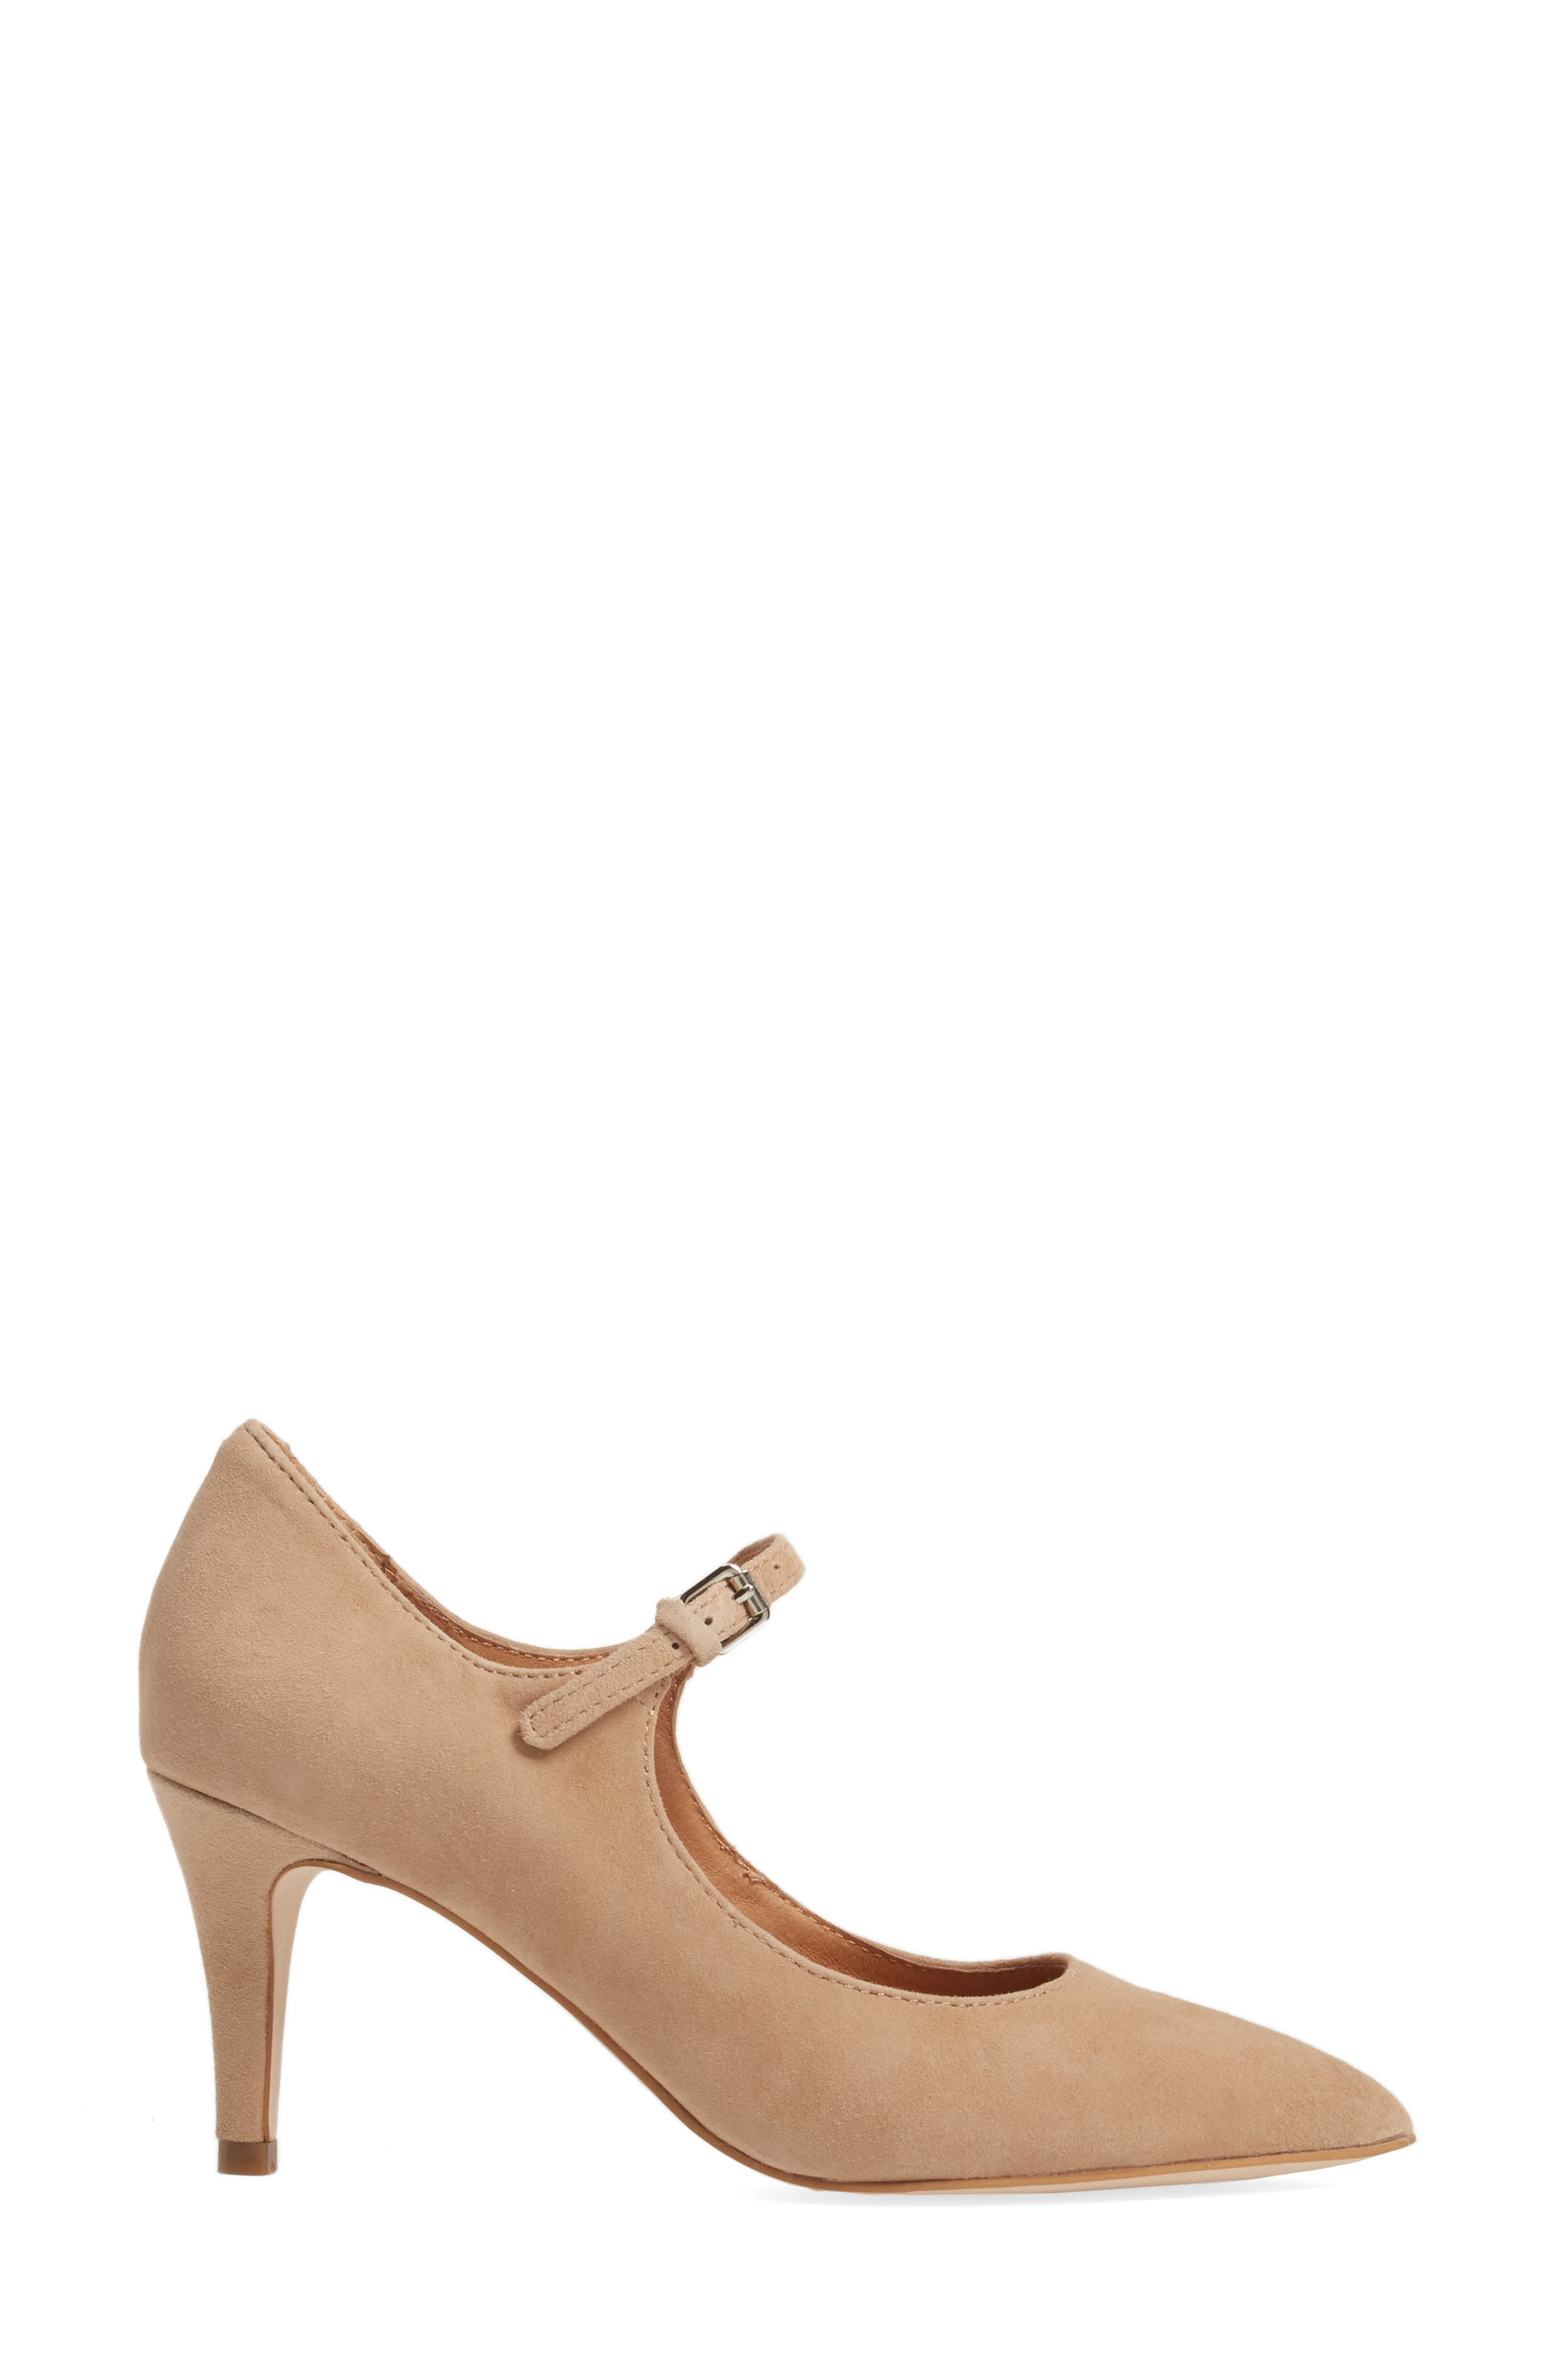 Coy Pointy Toe Pump,                             Alternate thumbnail 3, color,                             Dark Nude Suede